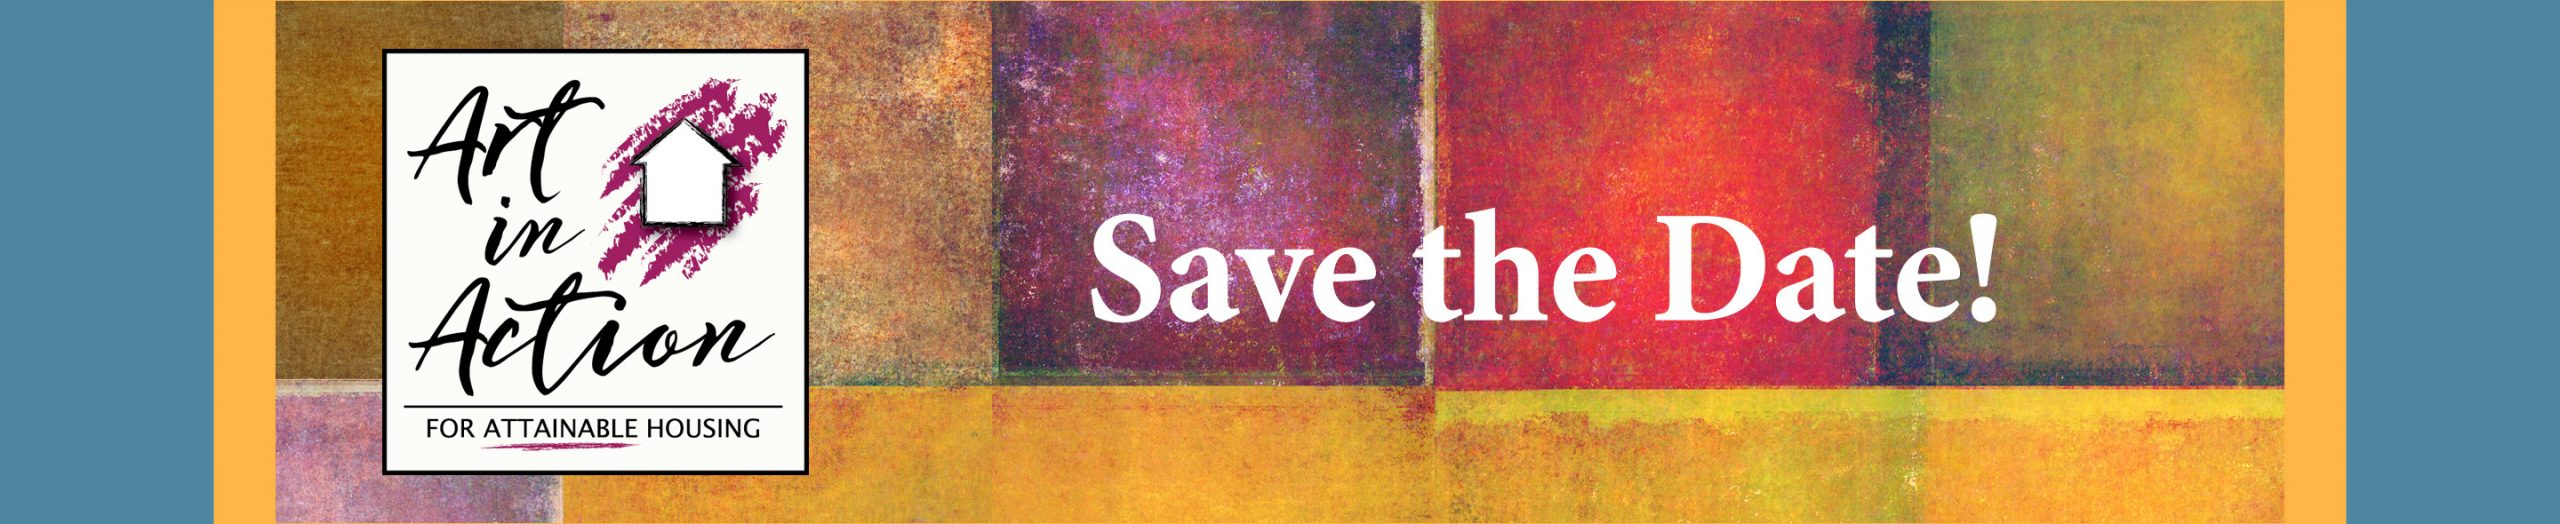 Save the Date: Art in Action!